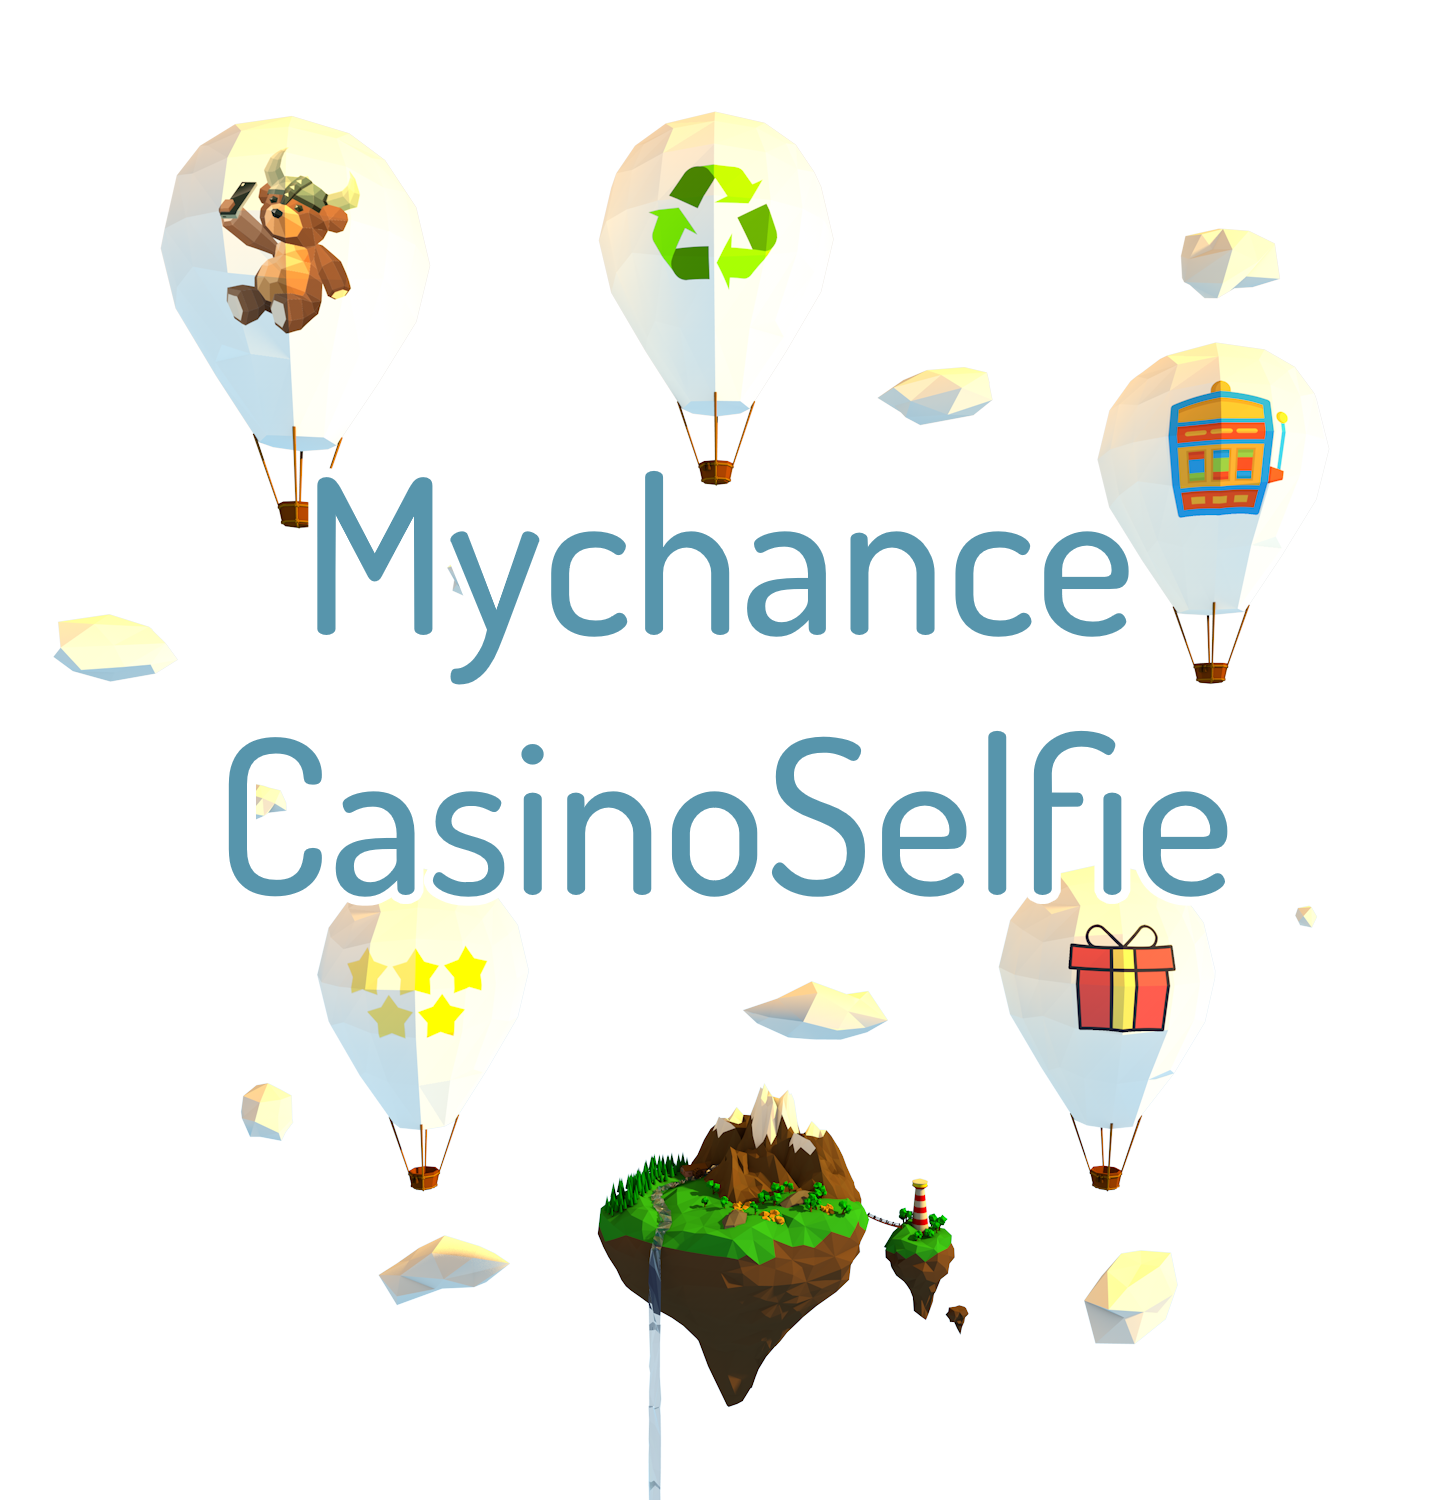 Mychance review